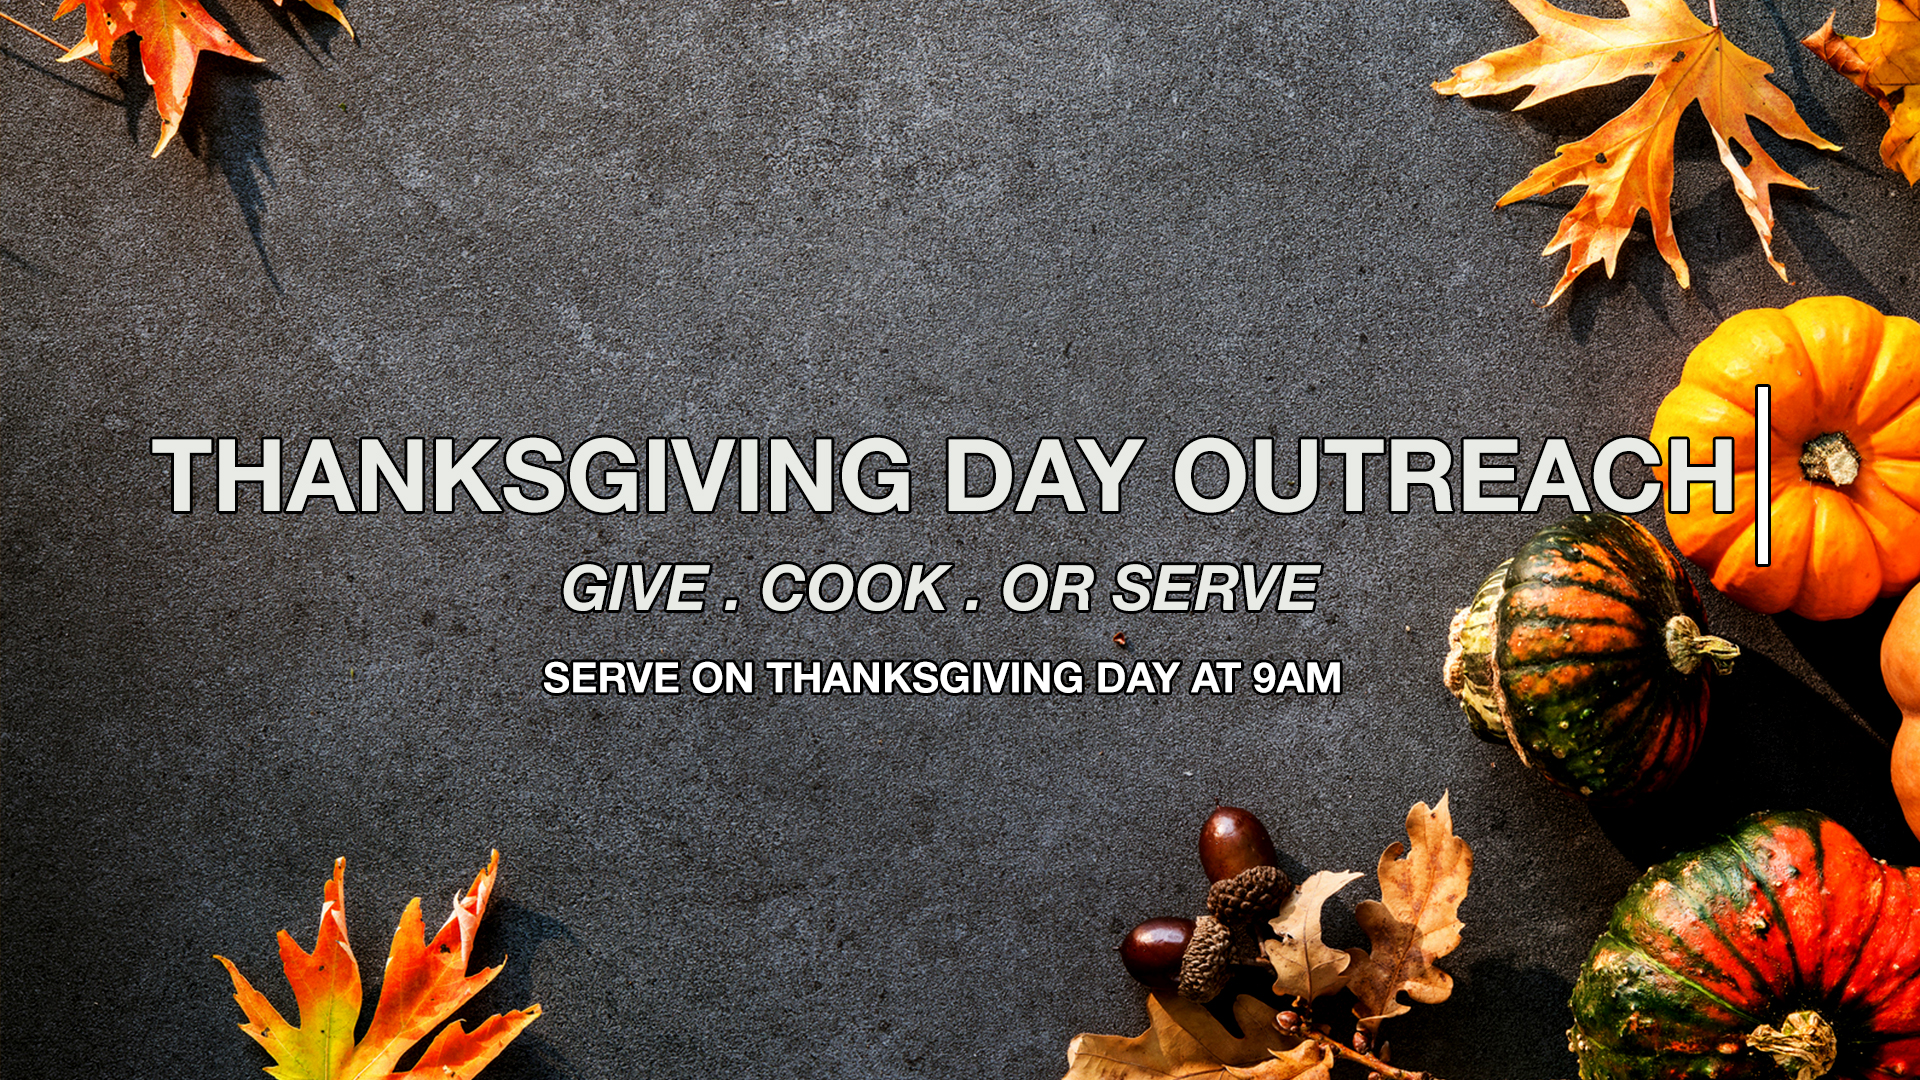 Thanksgiving Day Outreach